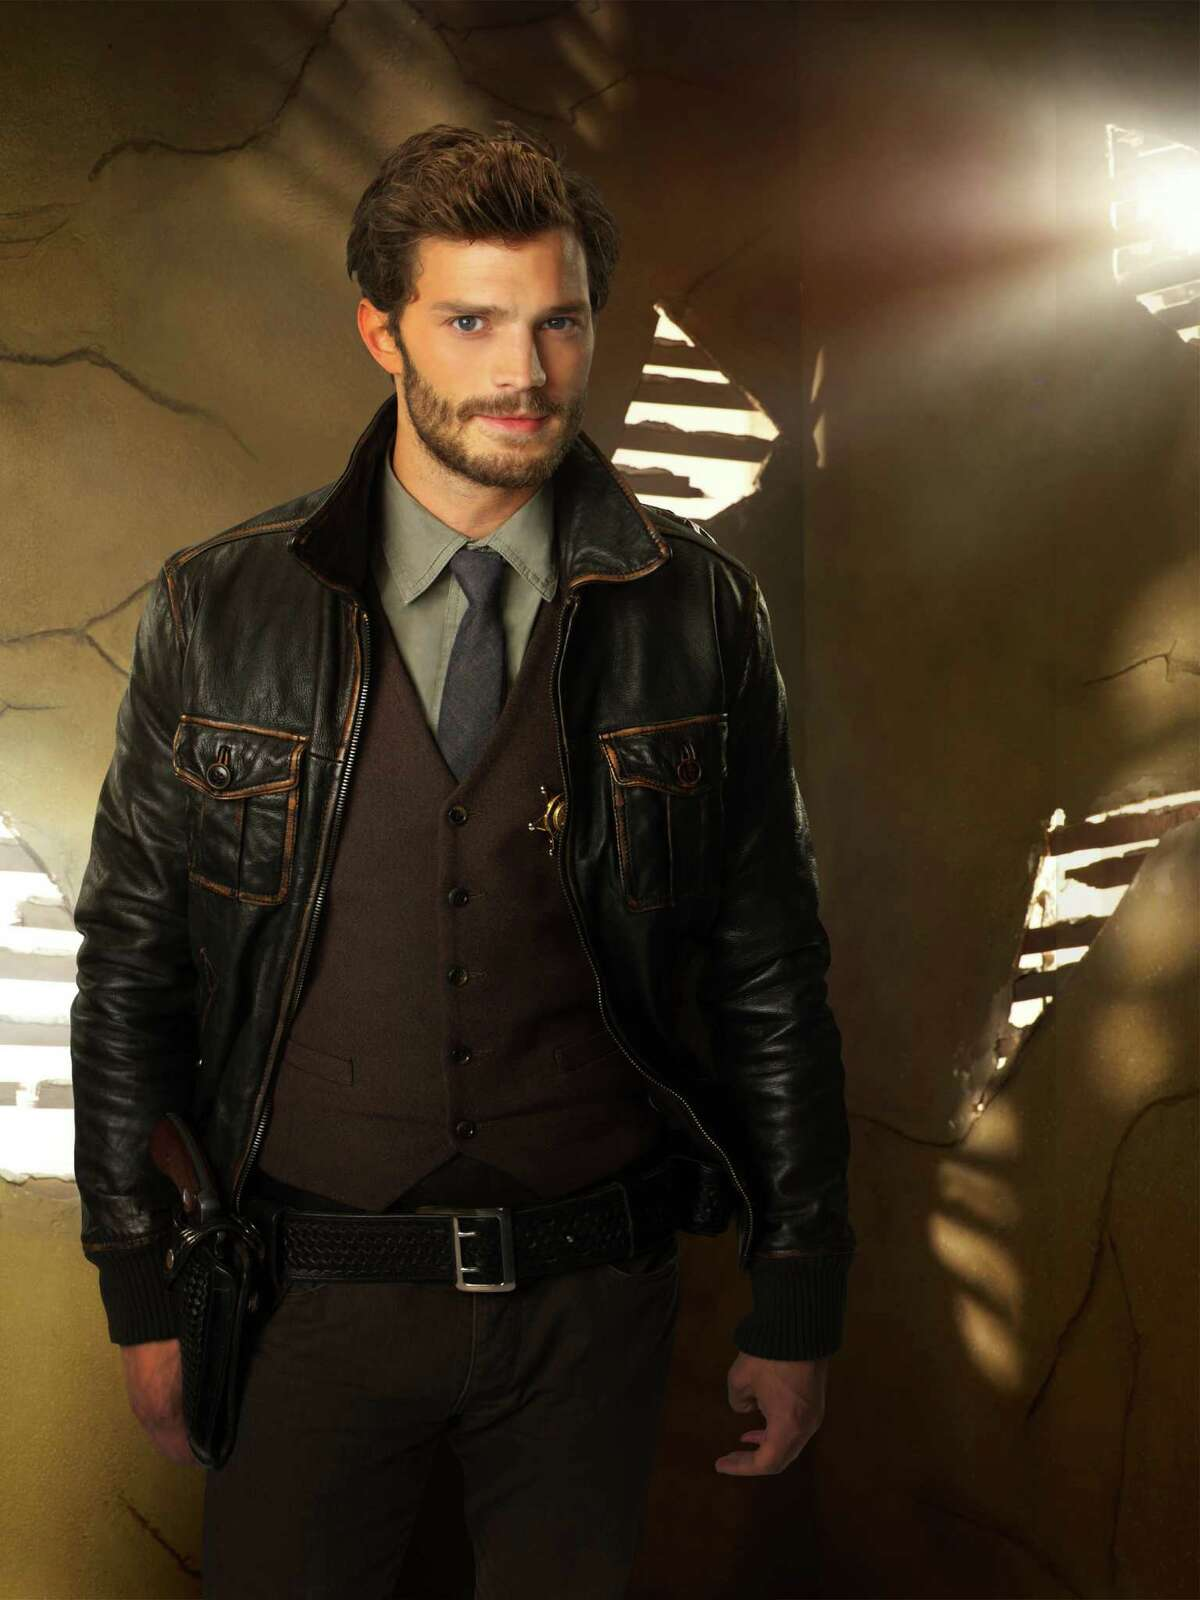 """In this photo released by ABC, Jamie Dornan guest stars as Sheriff Graham on ABC's """"Once Upon a Time."""" ?""""Fifty Shades of Grey?"""" has its male lead, again. Dornan has been cast as Christian Grey, the lead role that Charlie Hunnam withdrew from recently. (AP Photo/ABC, Craig Sjodin/Kharen Hill) ORG XMIT: CAET225"""